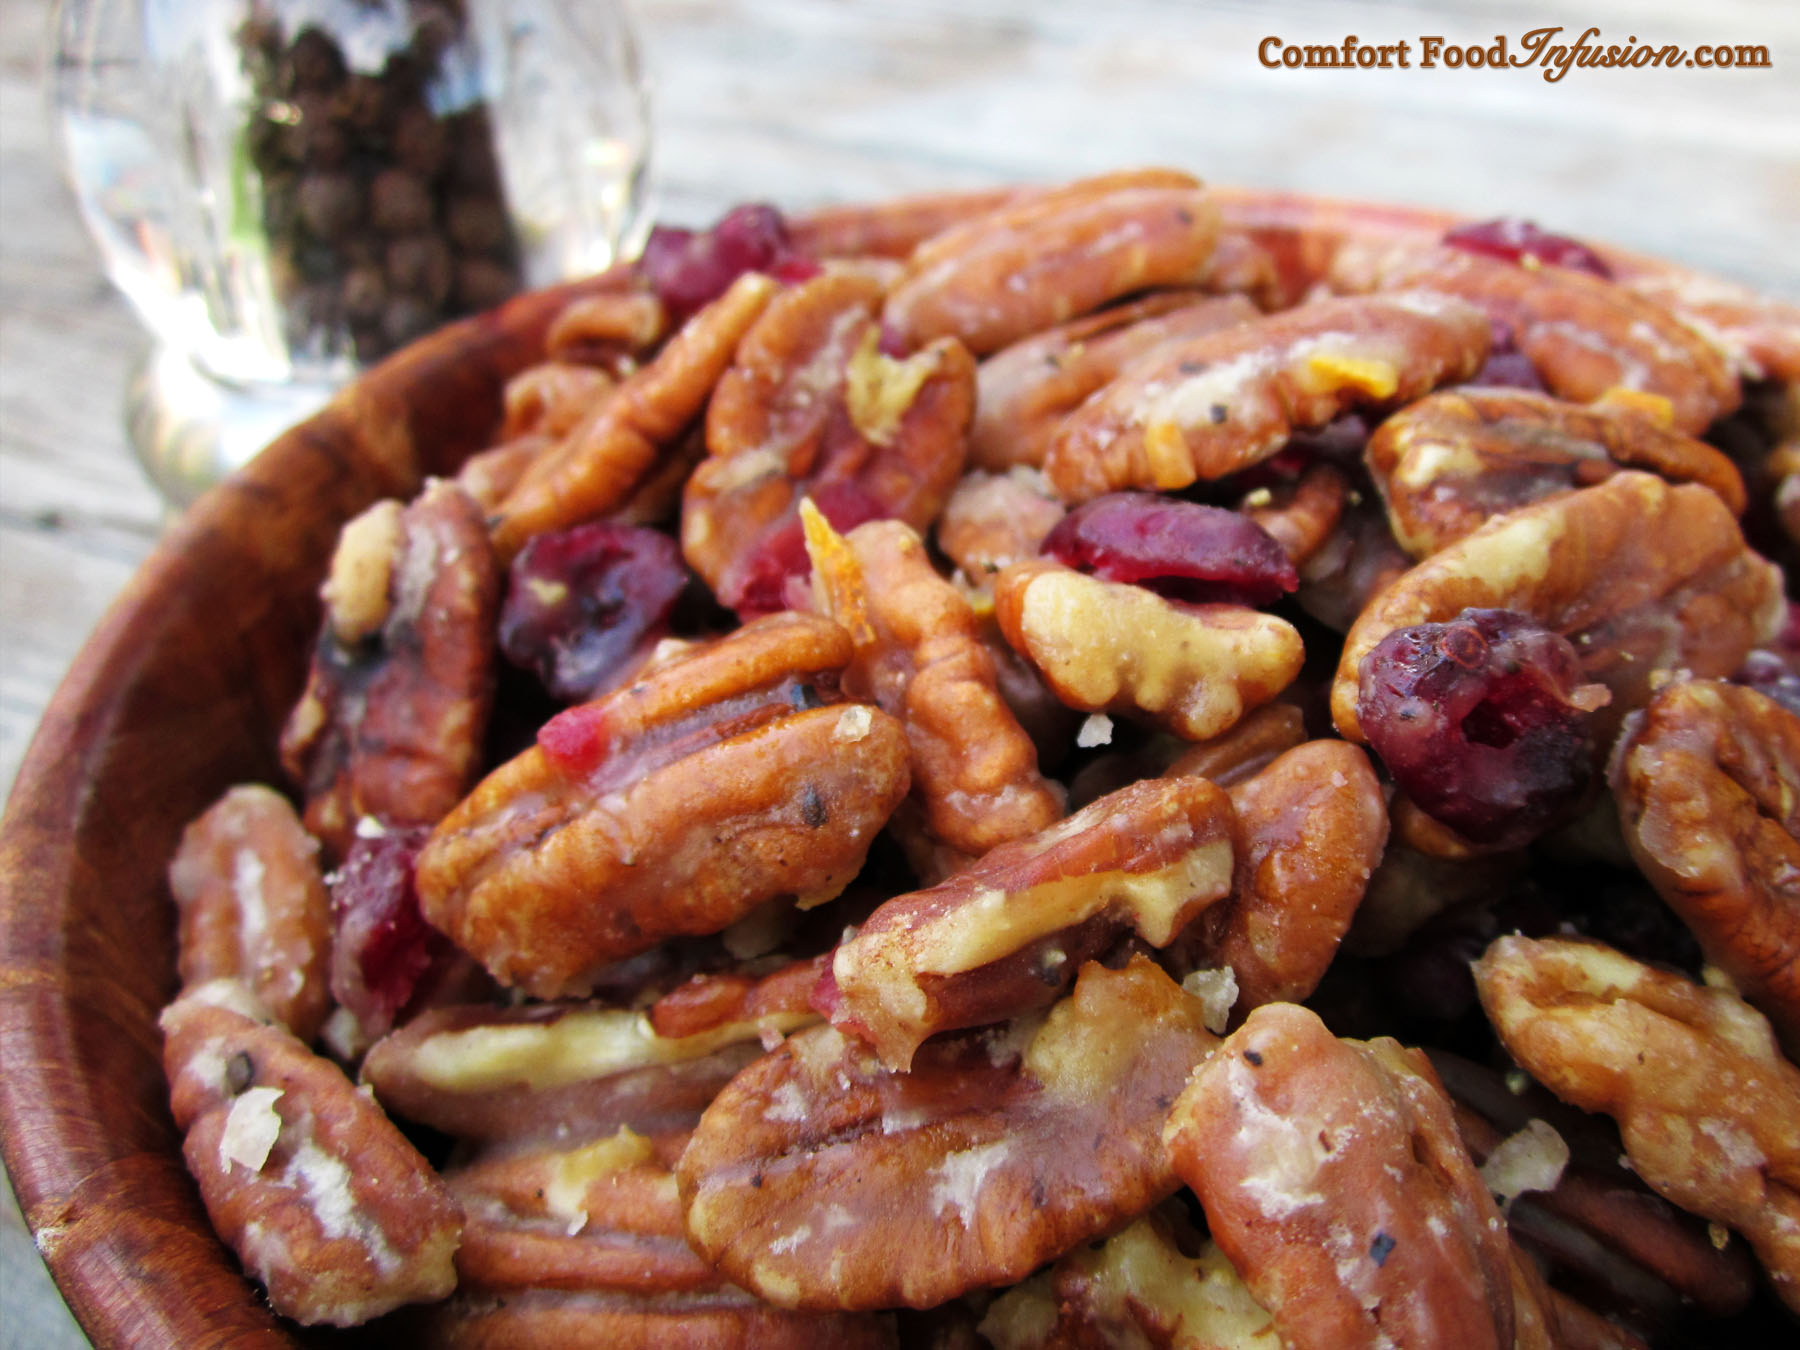 Candied Orange Pecans